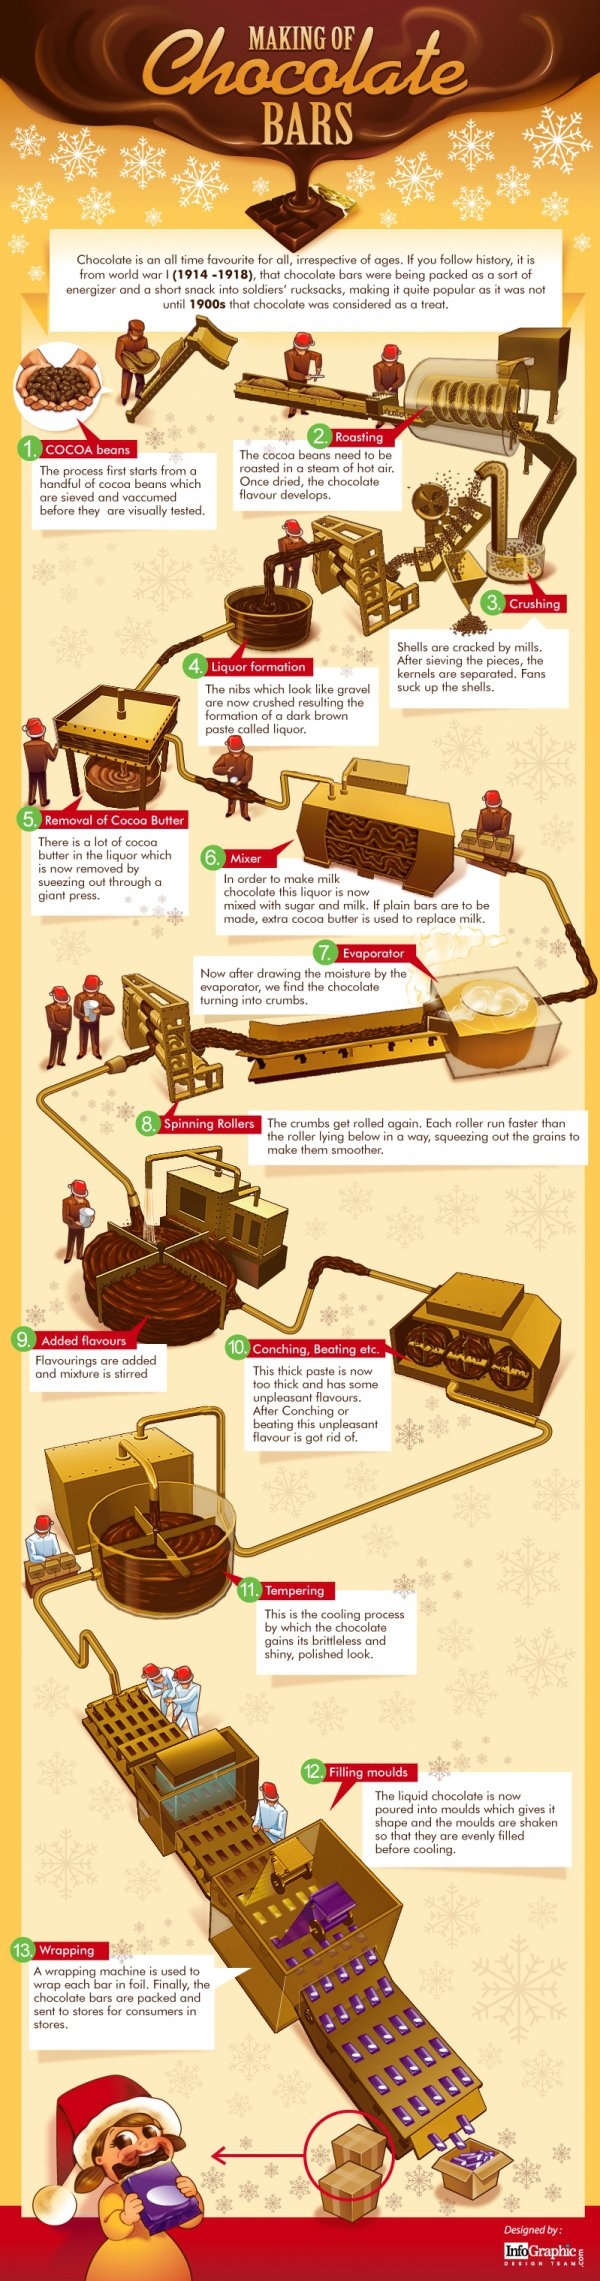 The 13 Steps of Chocolate Bars